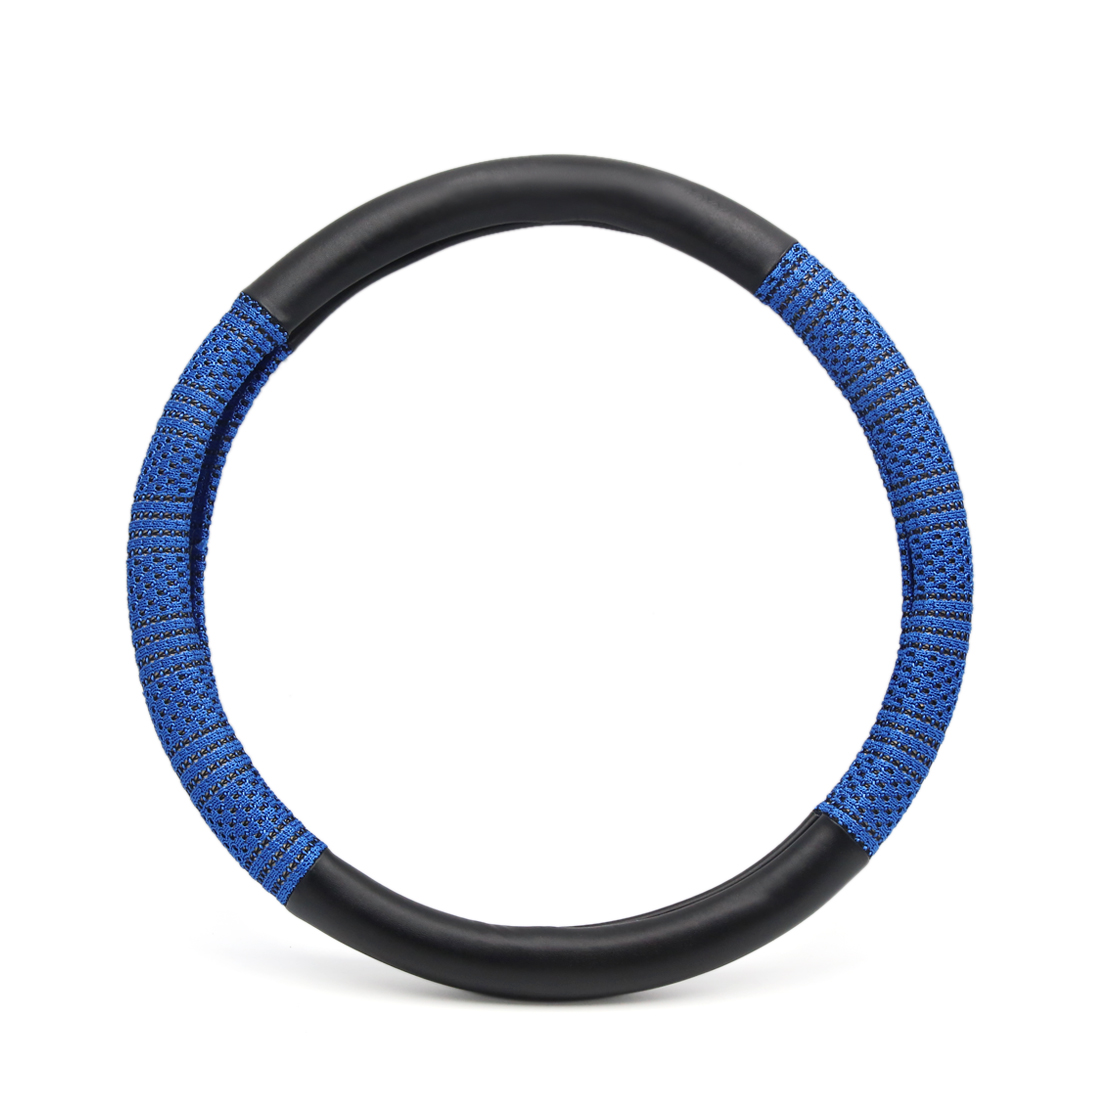 M Blue Black Ice Silk Faux Leather Anti Skid Car Steering Wheel Cover Protector